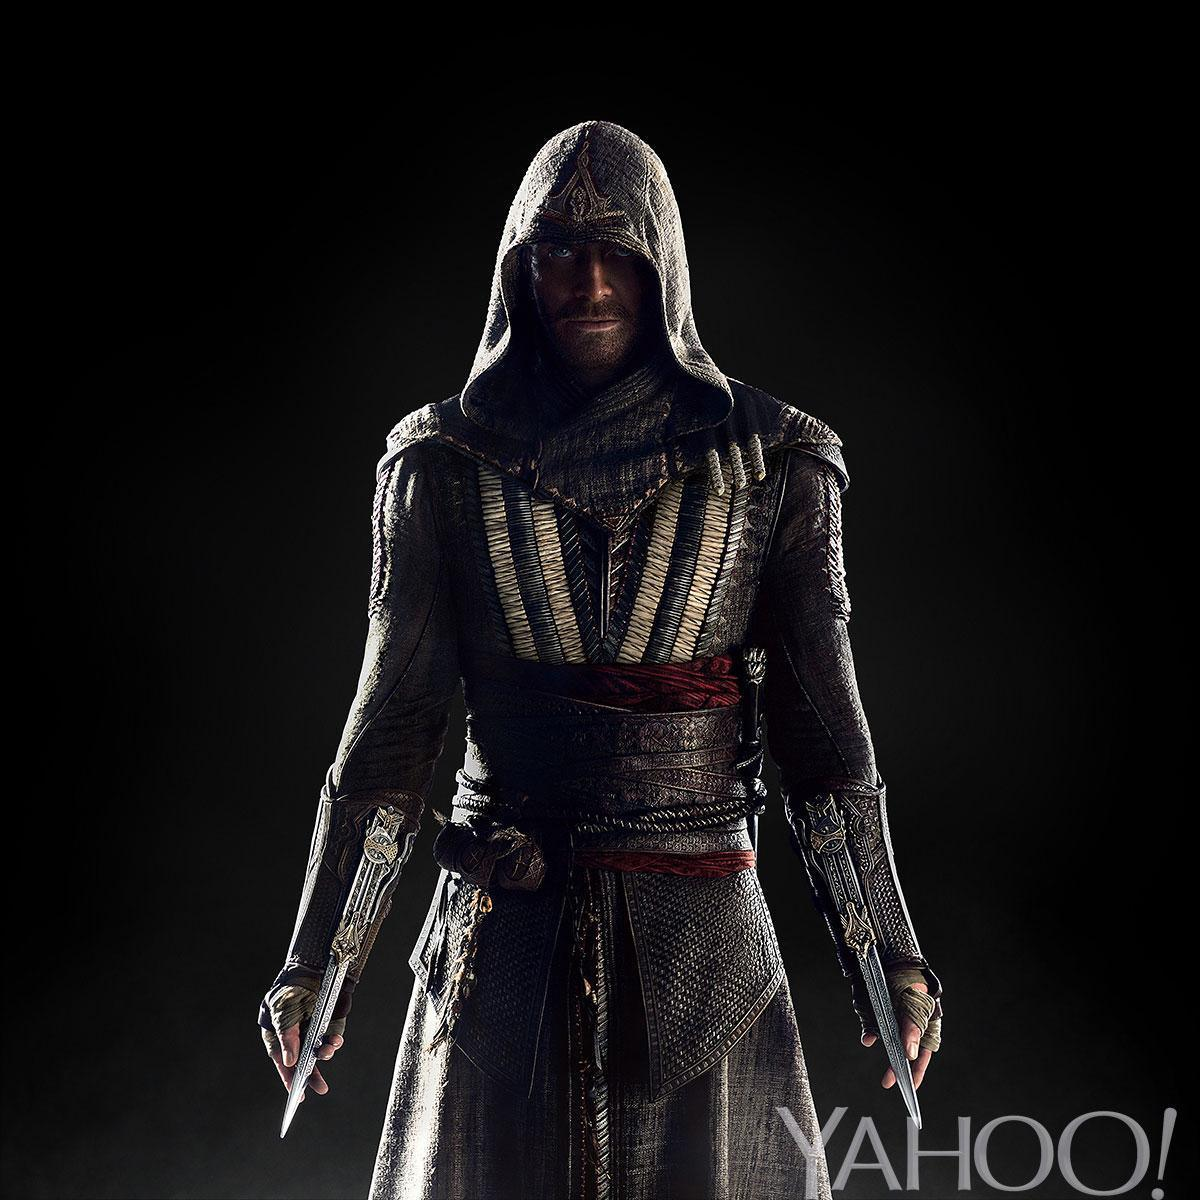 Take a First Look at Michael Fassbender In Assassin's Creed